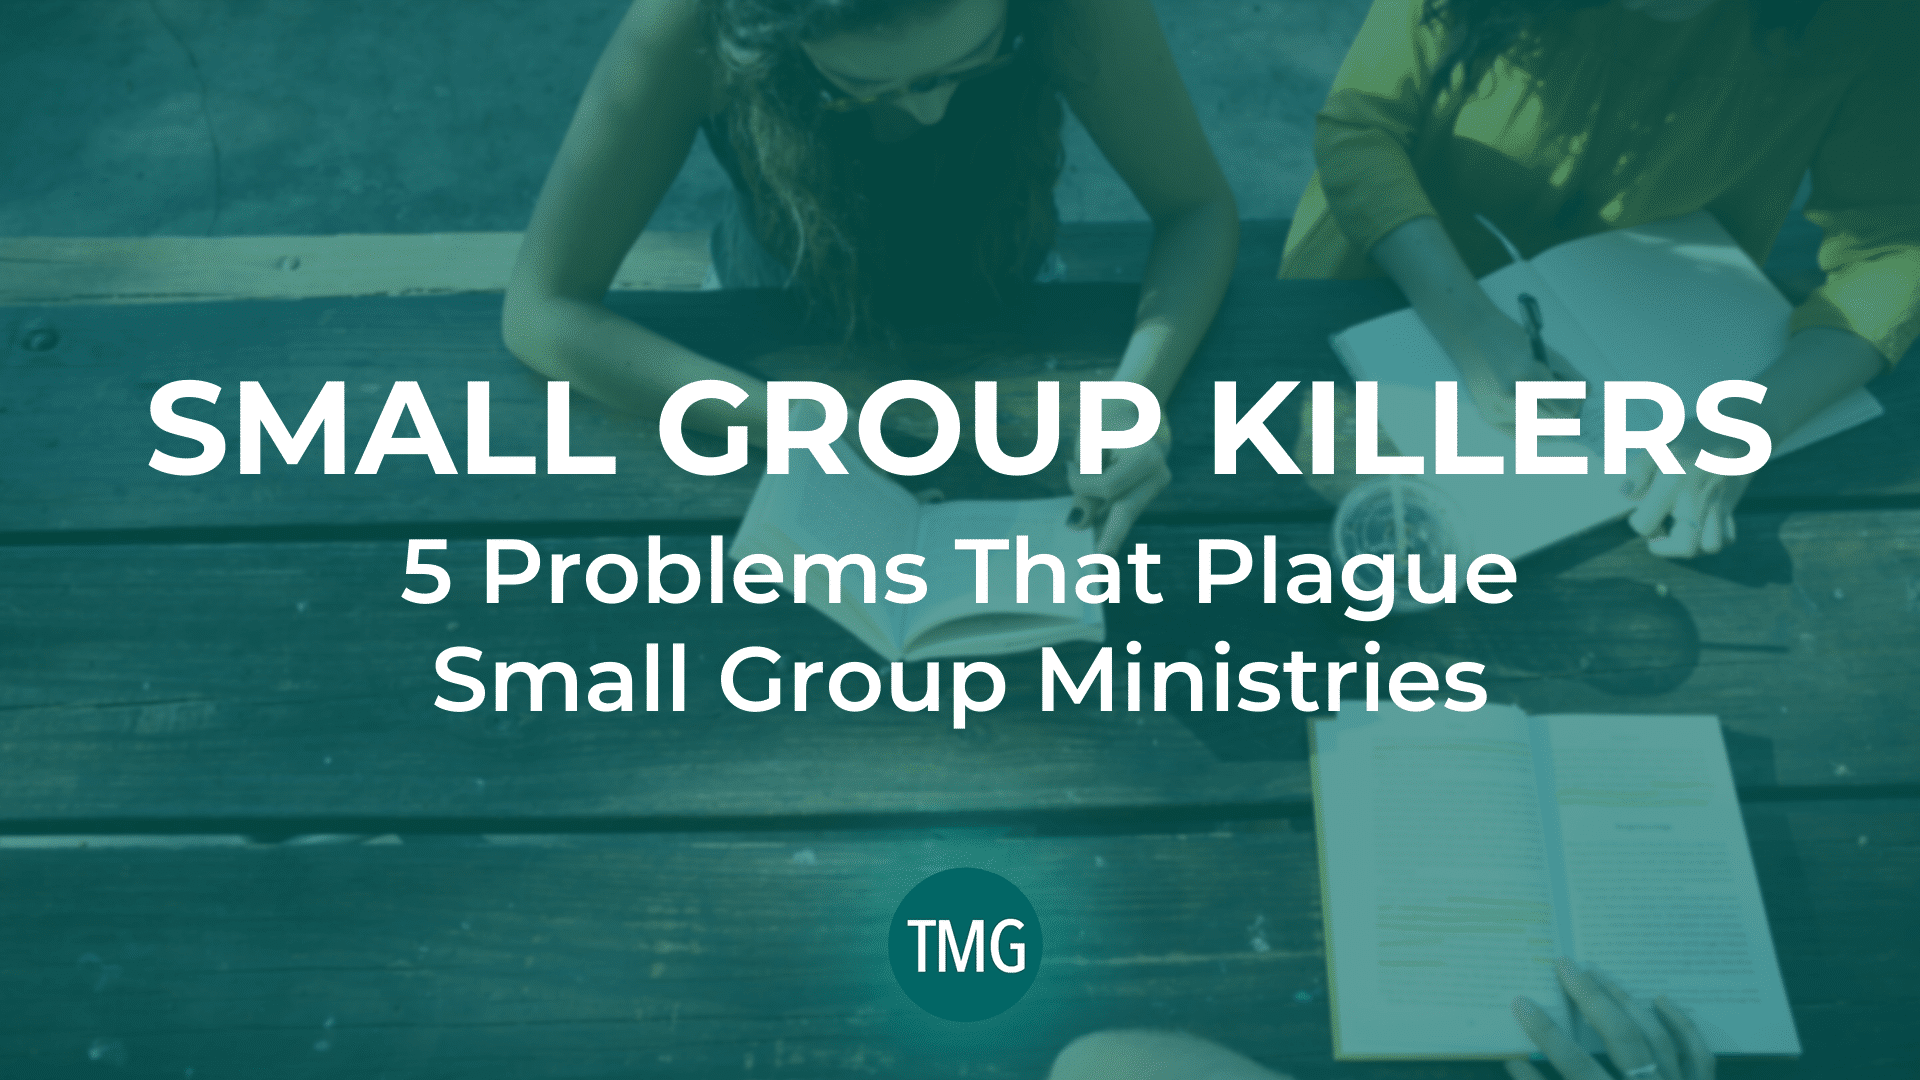 5-problems-that-plague-small-group-ministries_the-church-revitalization-podcast_the-malphurs-group